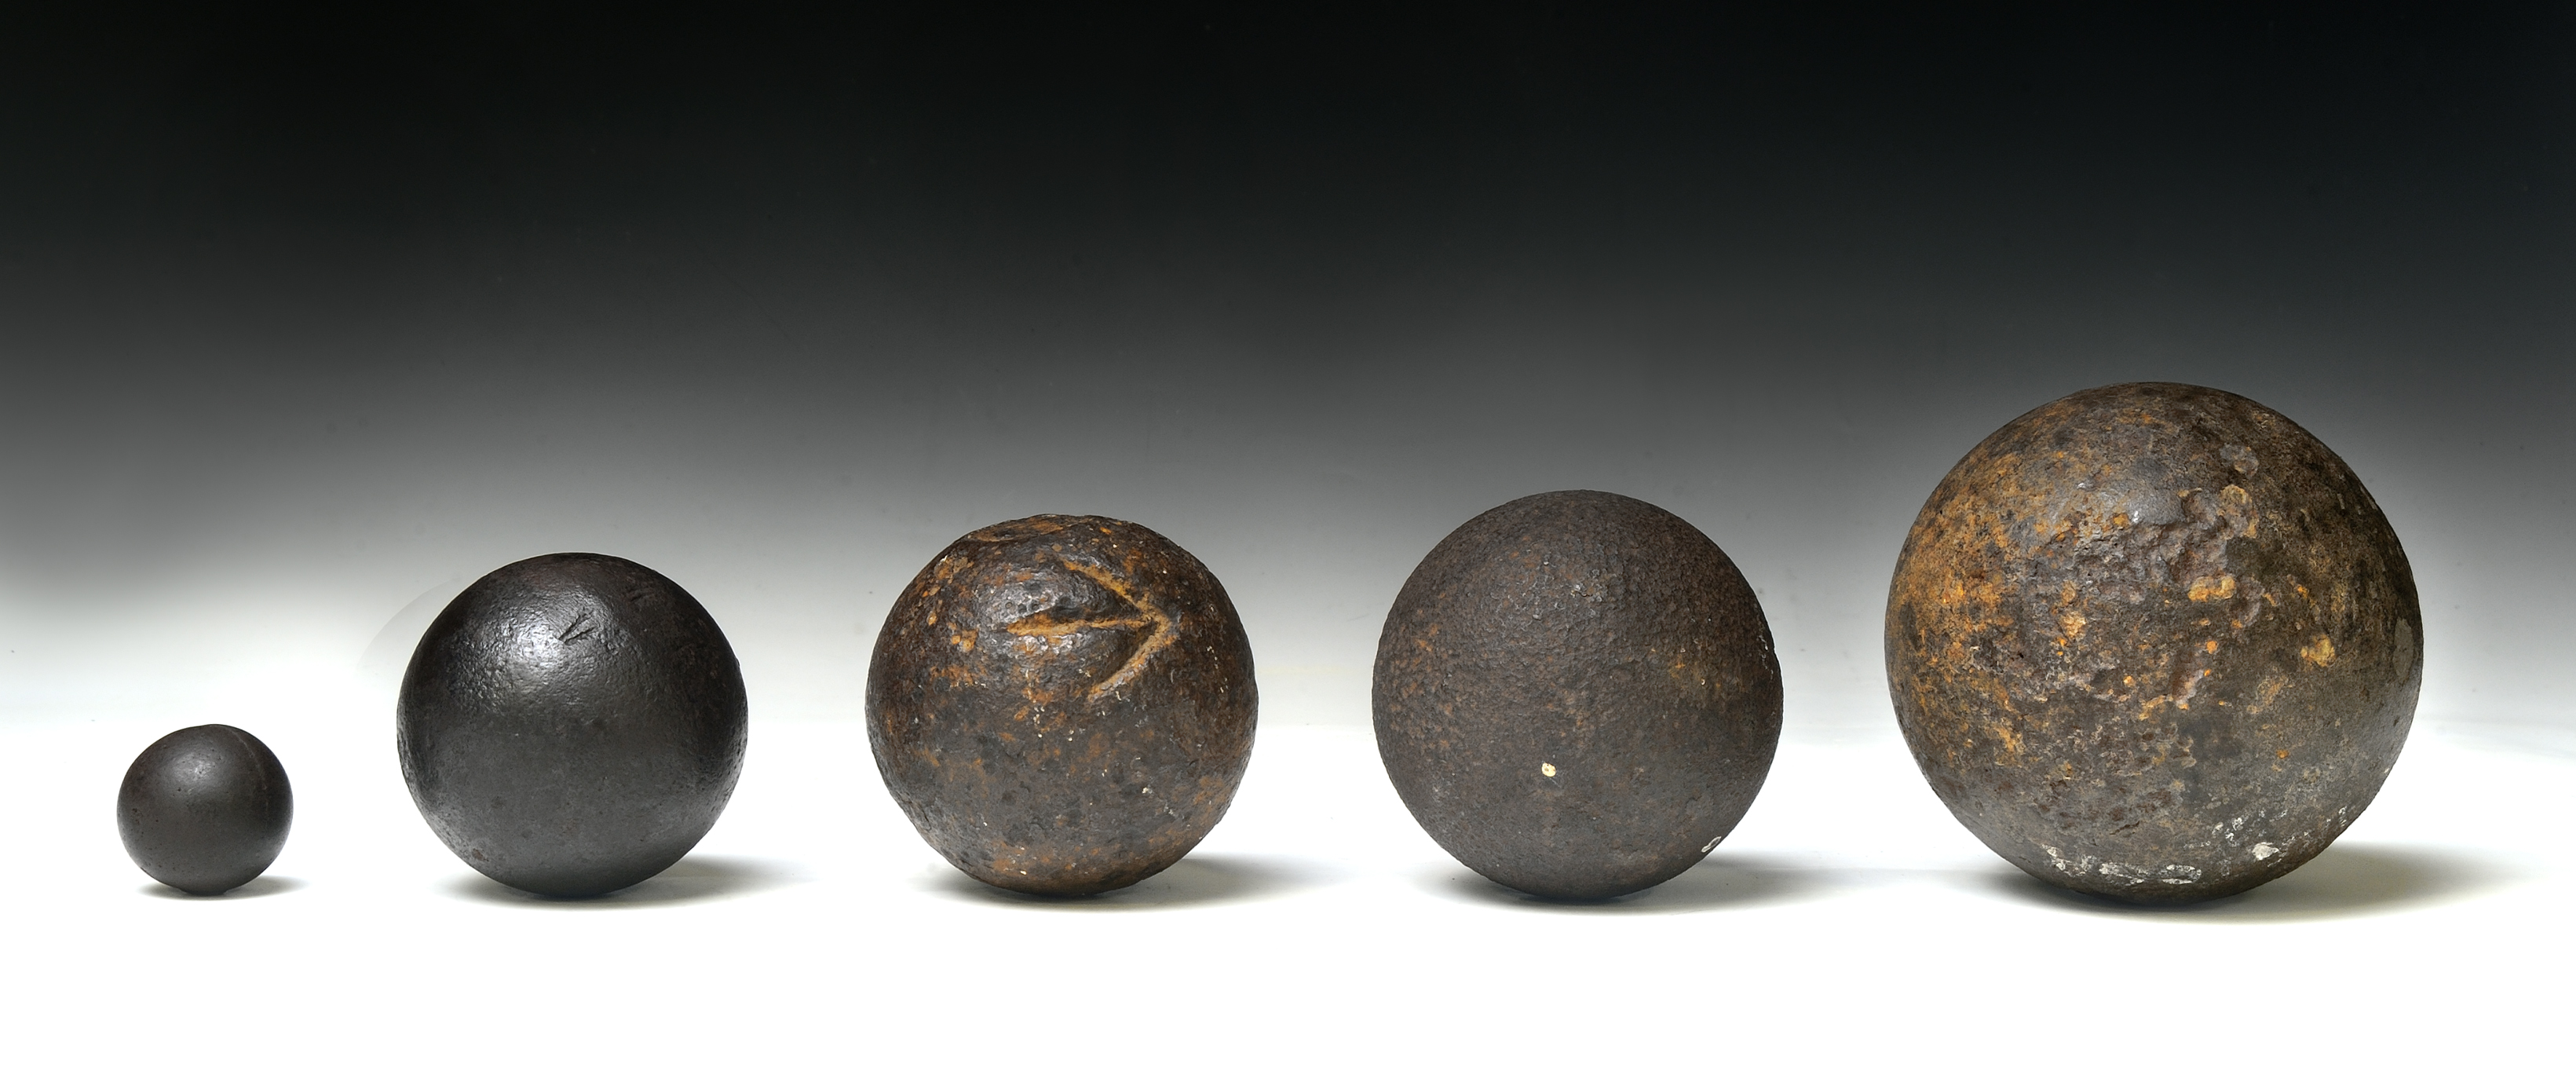 Cannonballs and grapeshot, 18th century